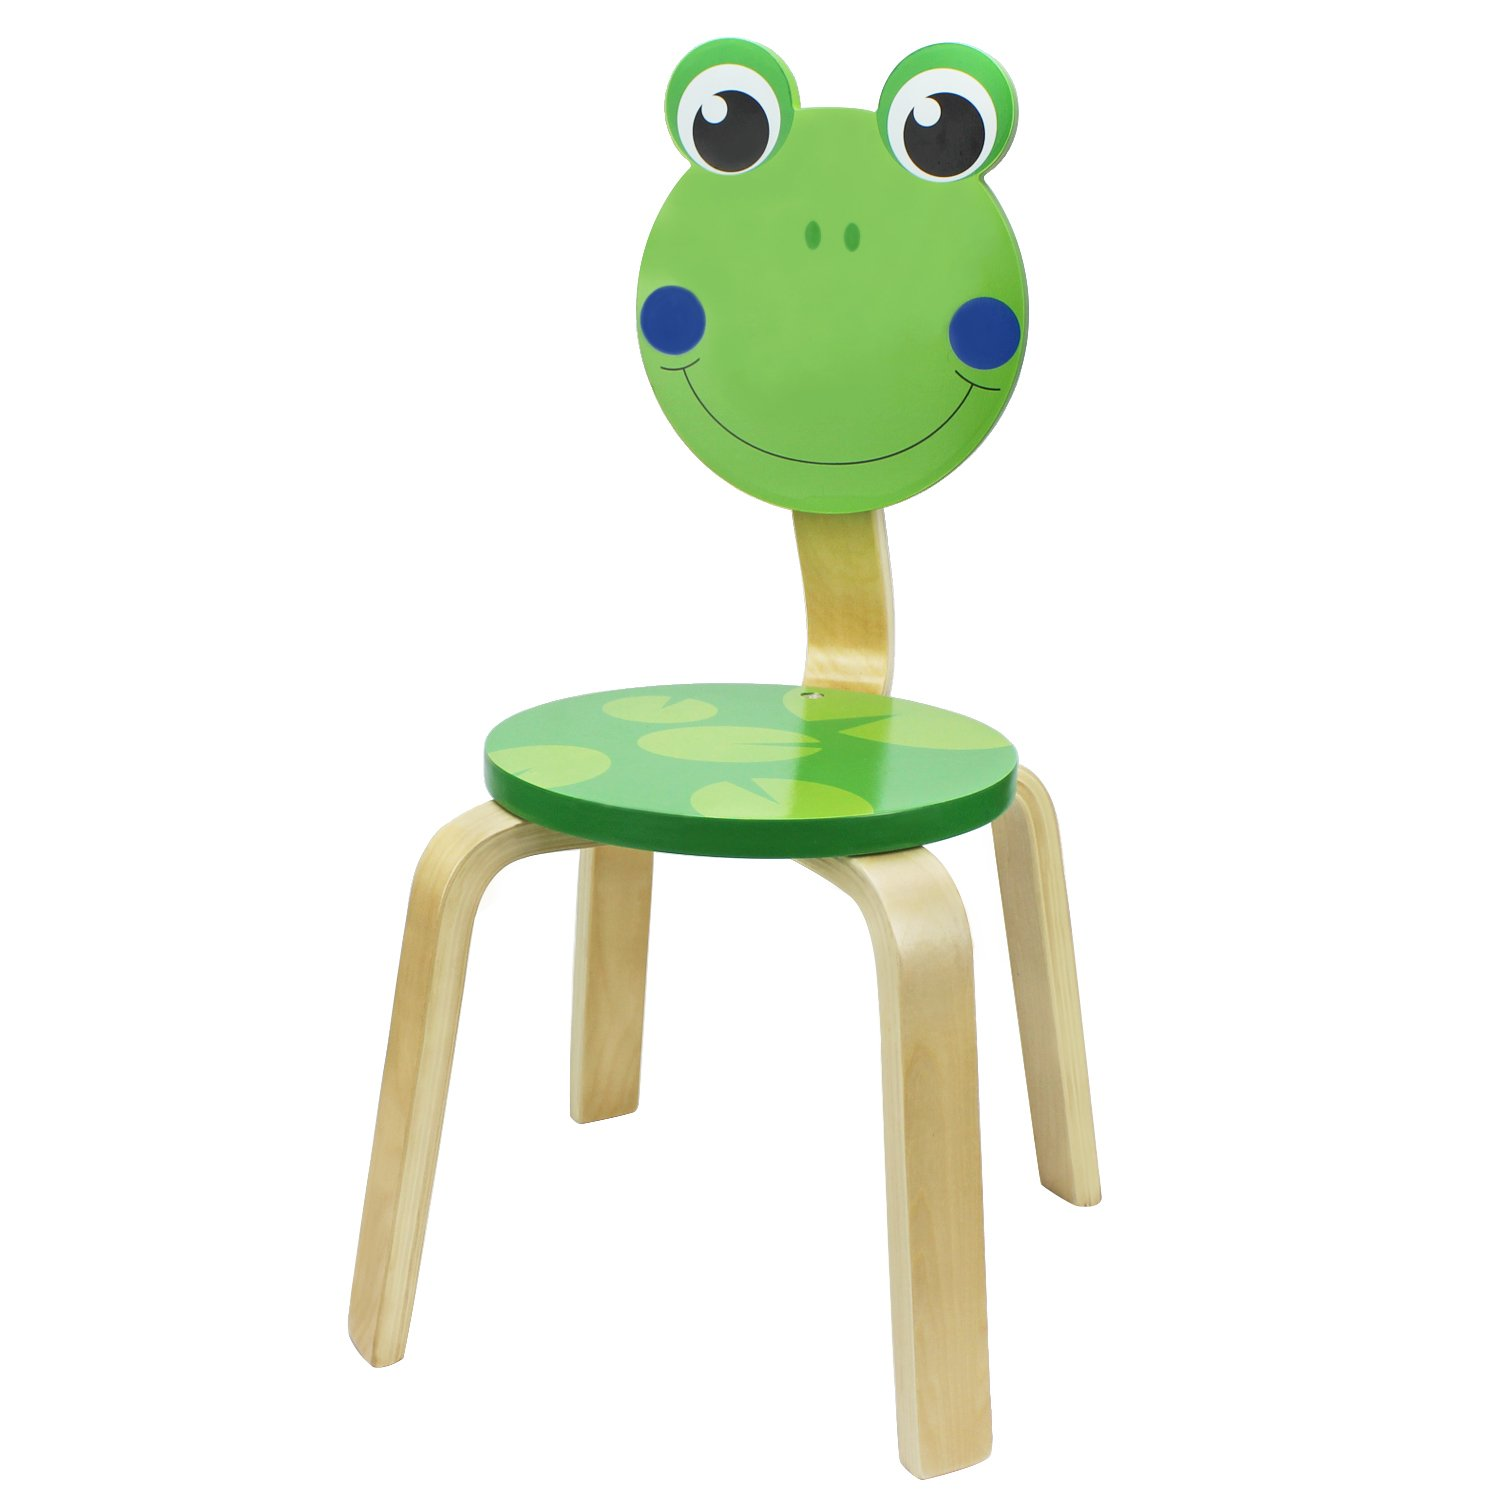 iPlay, iLearn Kids Wood Stackable Chair, Wooden Cute Frog Seat for Indoor, Outdoor, Playroom, Classroom, Kindergarten, Animal Furniture Round Stool for 2, 3, 4, 5 Year Olds Up Toddler, Child, Boy,Girl